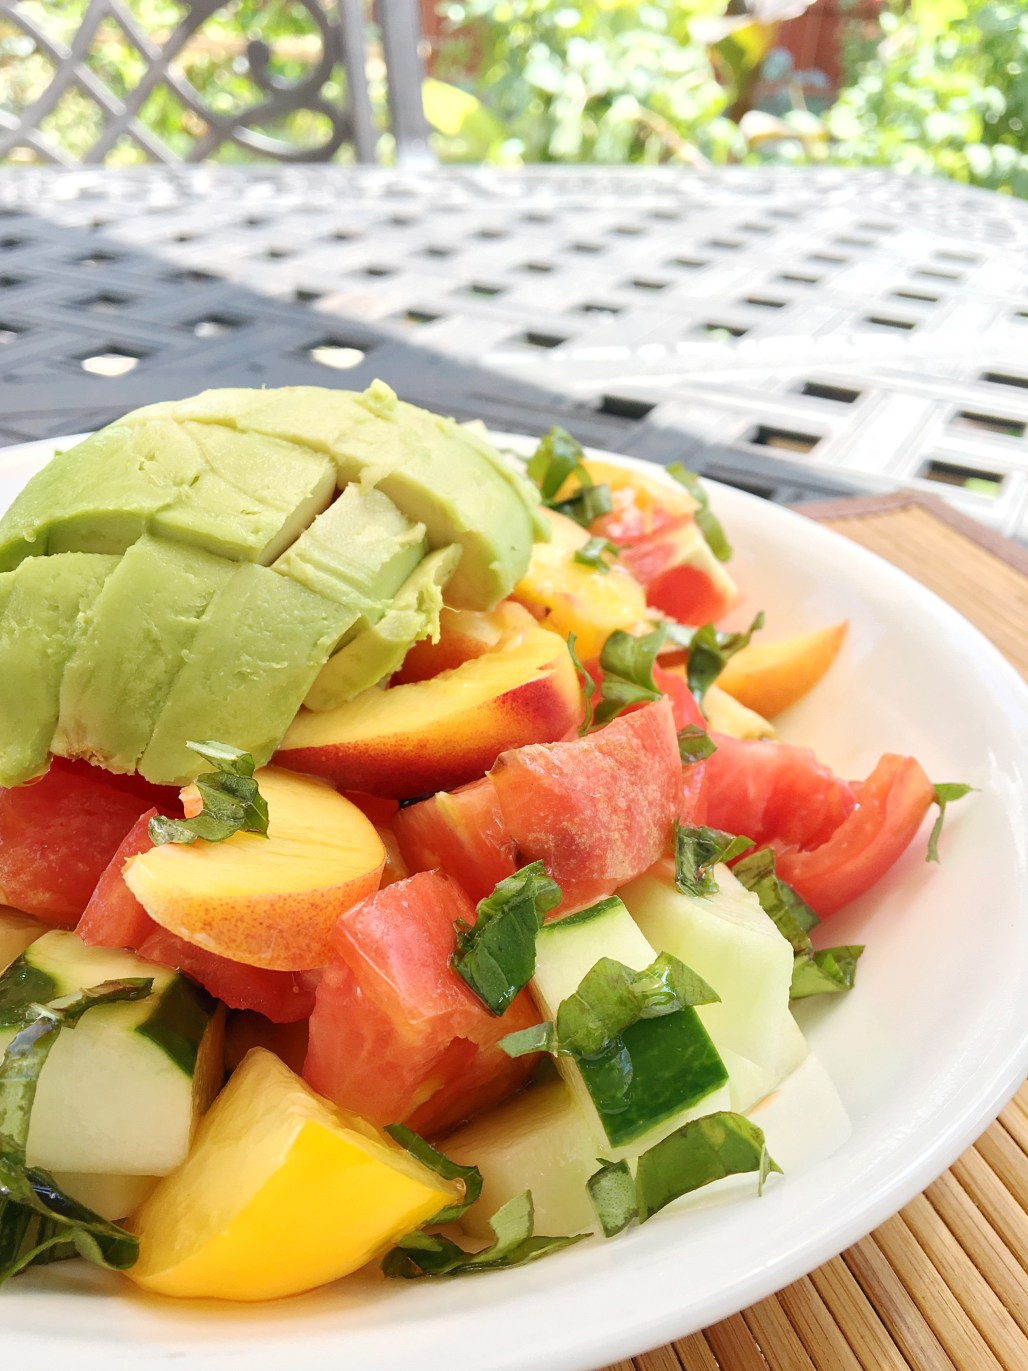 Late Summer Eats : Peach, Heirloom Tomato + Avocado Salad | Dreamery Events